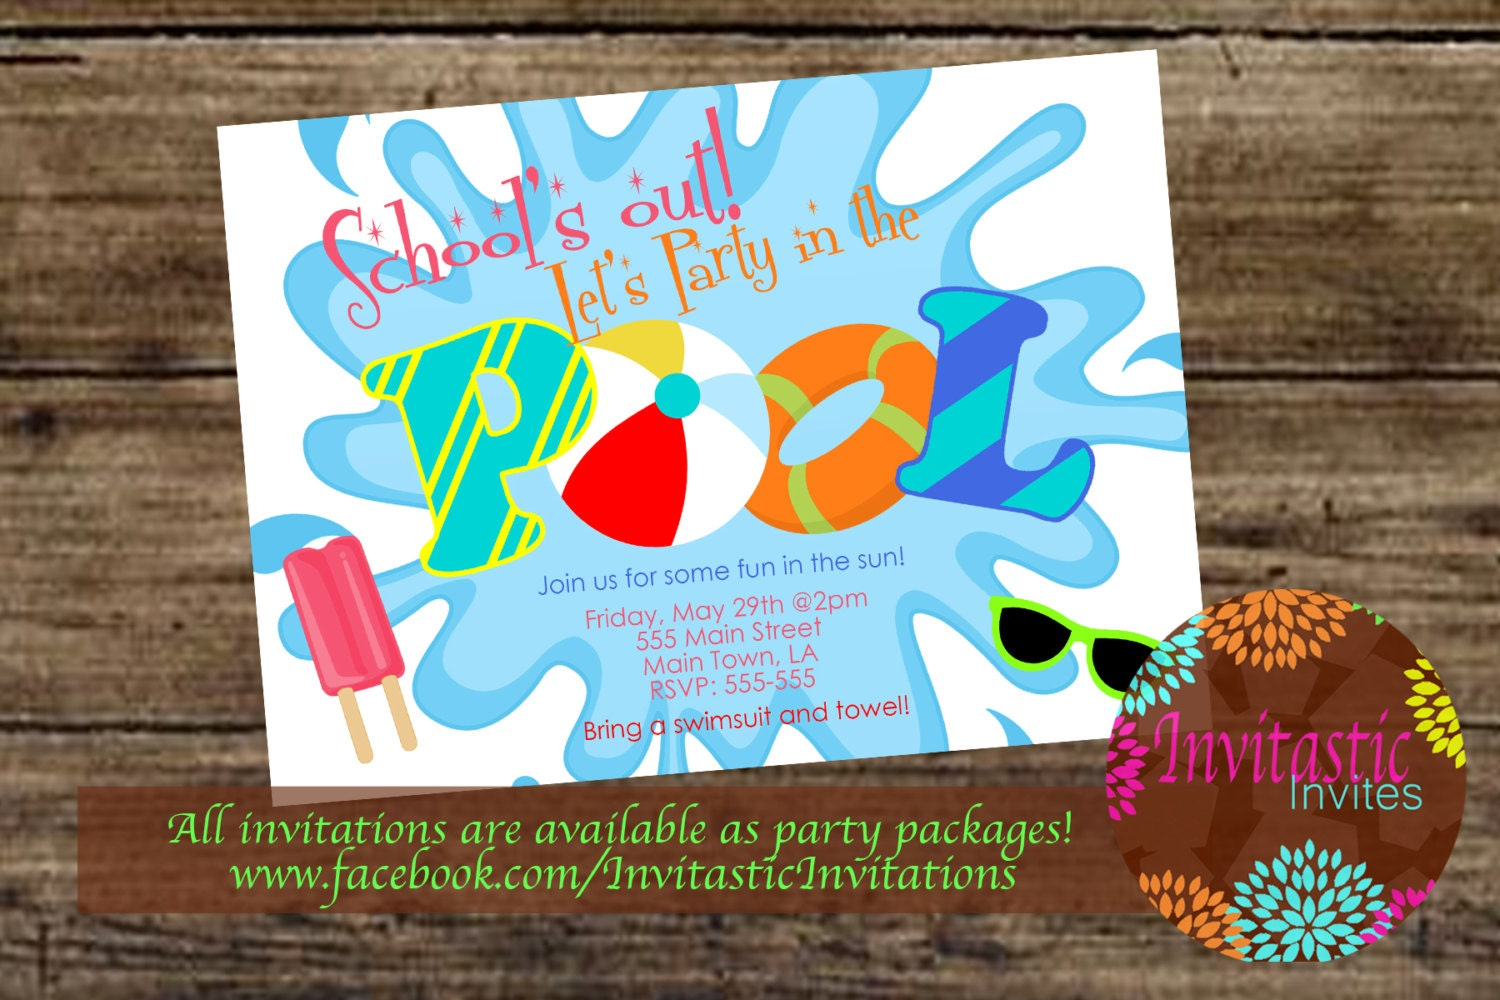 Pool Party End of the School year party graduation party